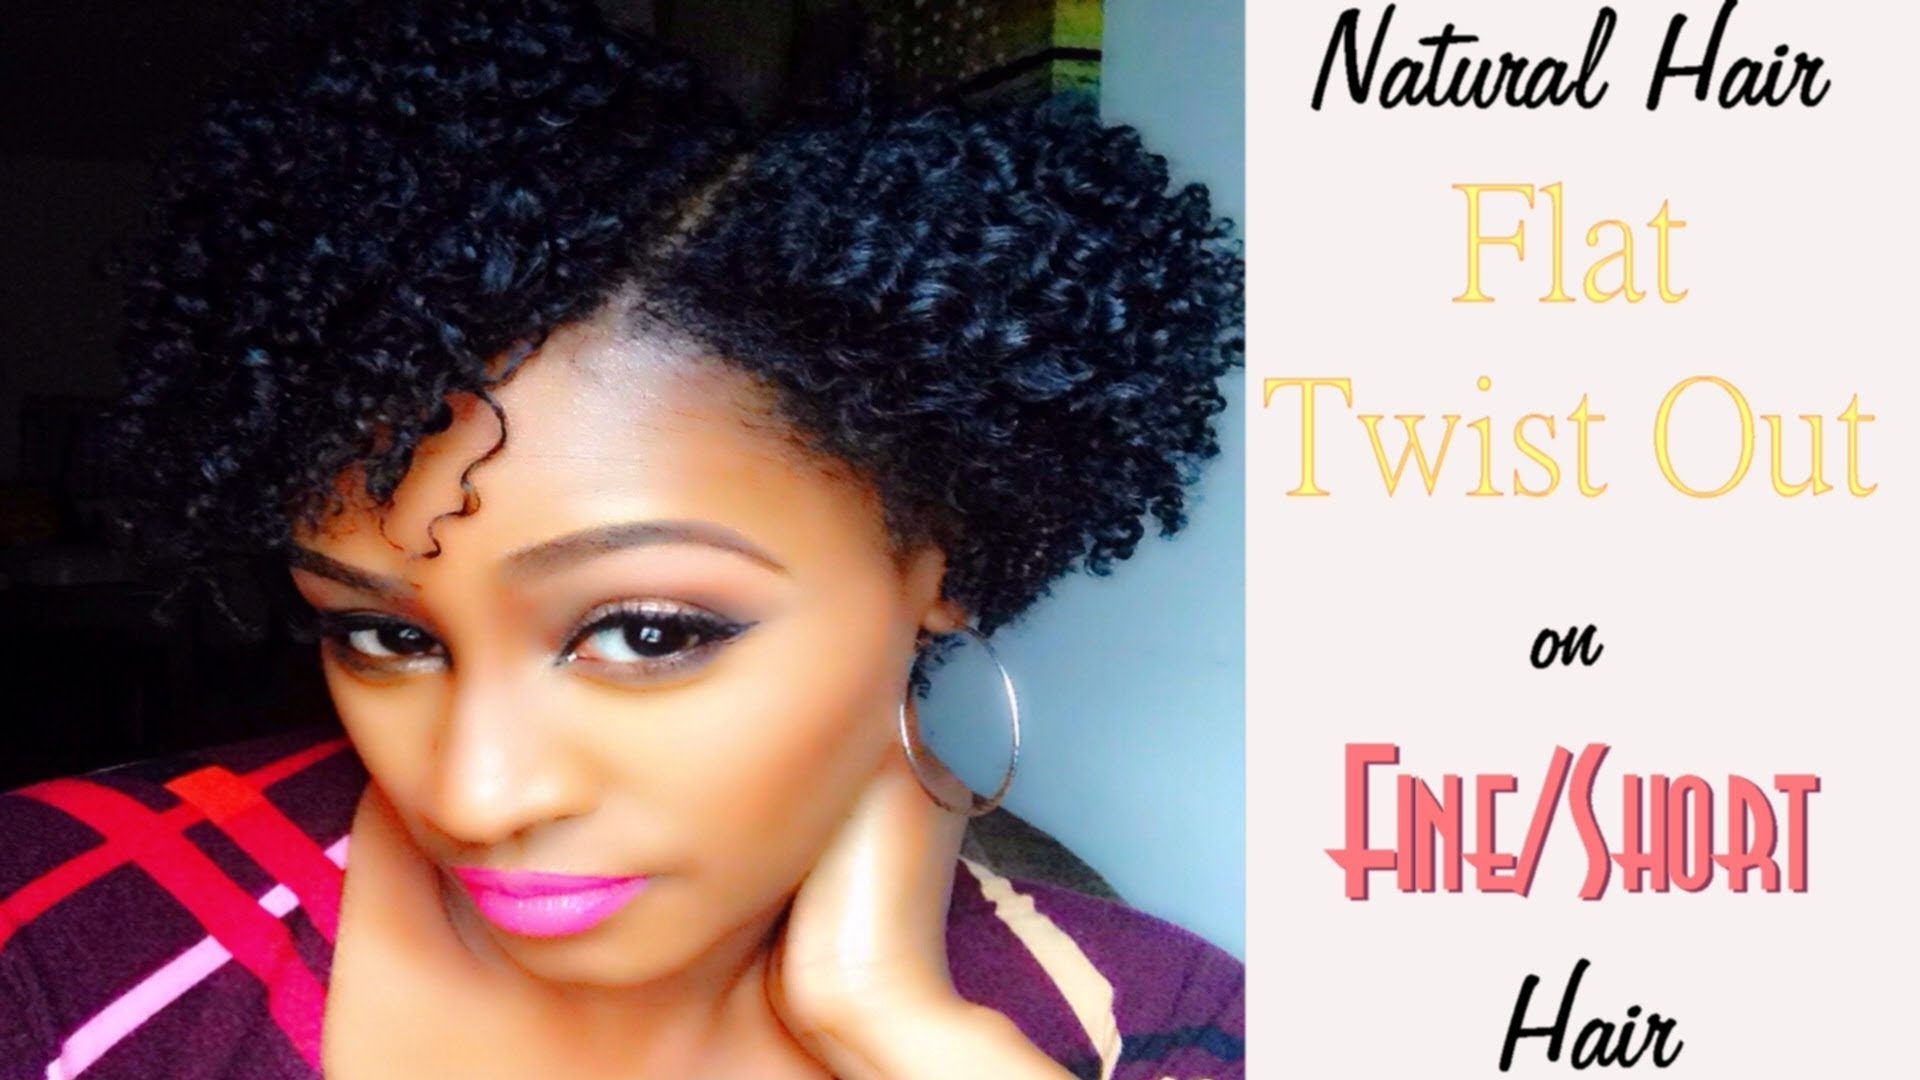 Natural Hair | Flat Twist Out On Fine/short Hair - Youtube in Haircuts For Fine Thin Natural Hair